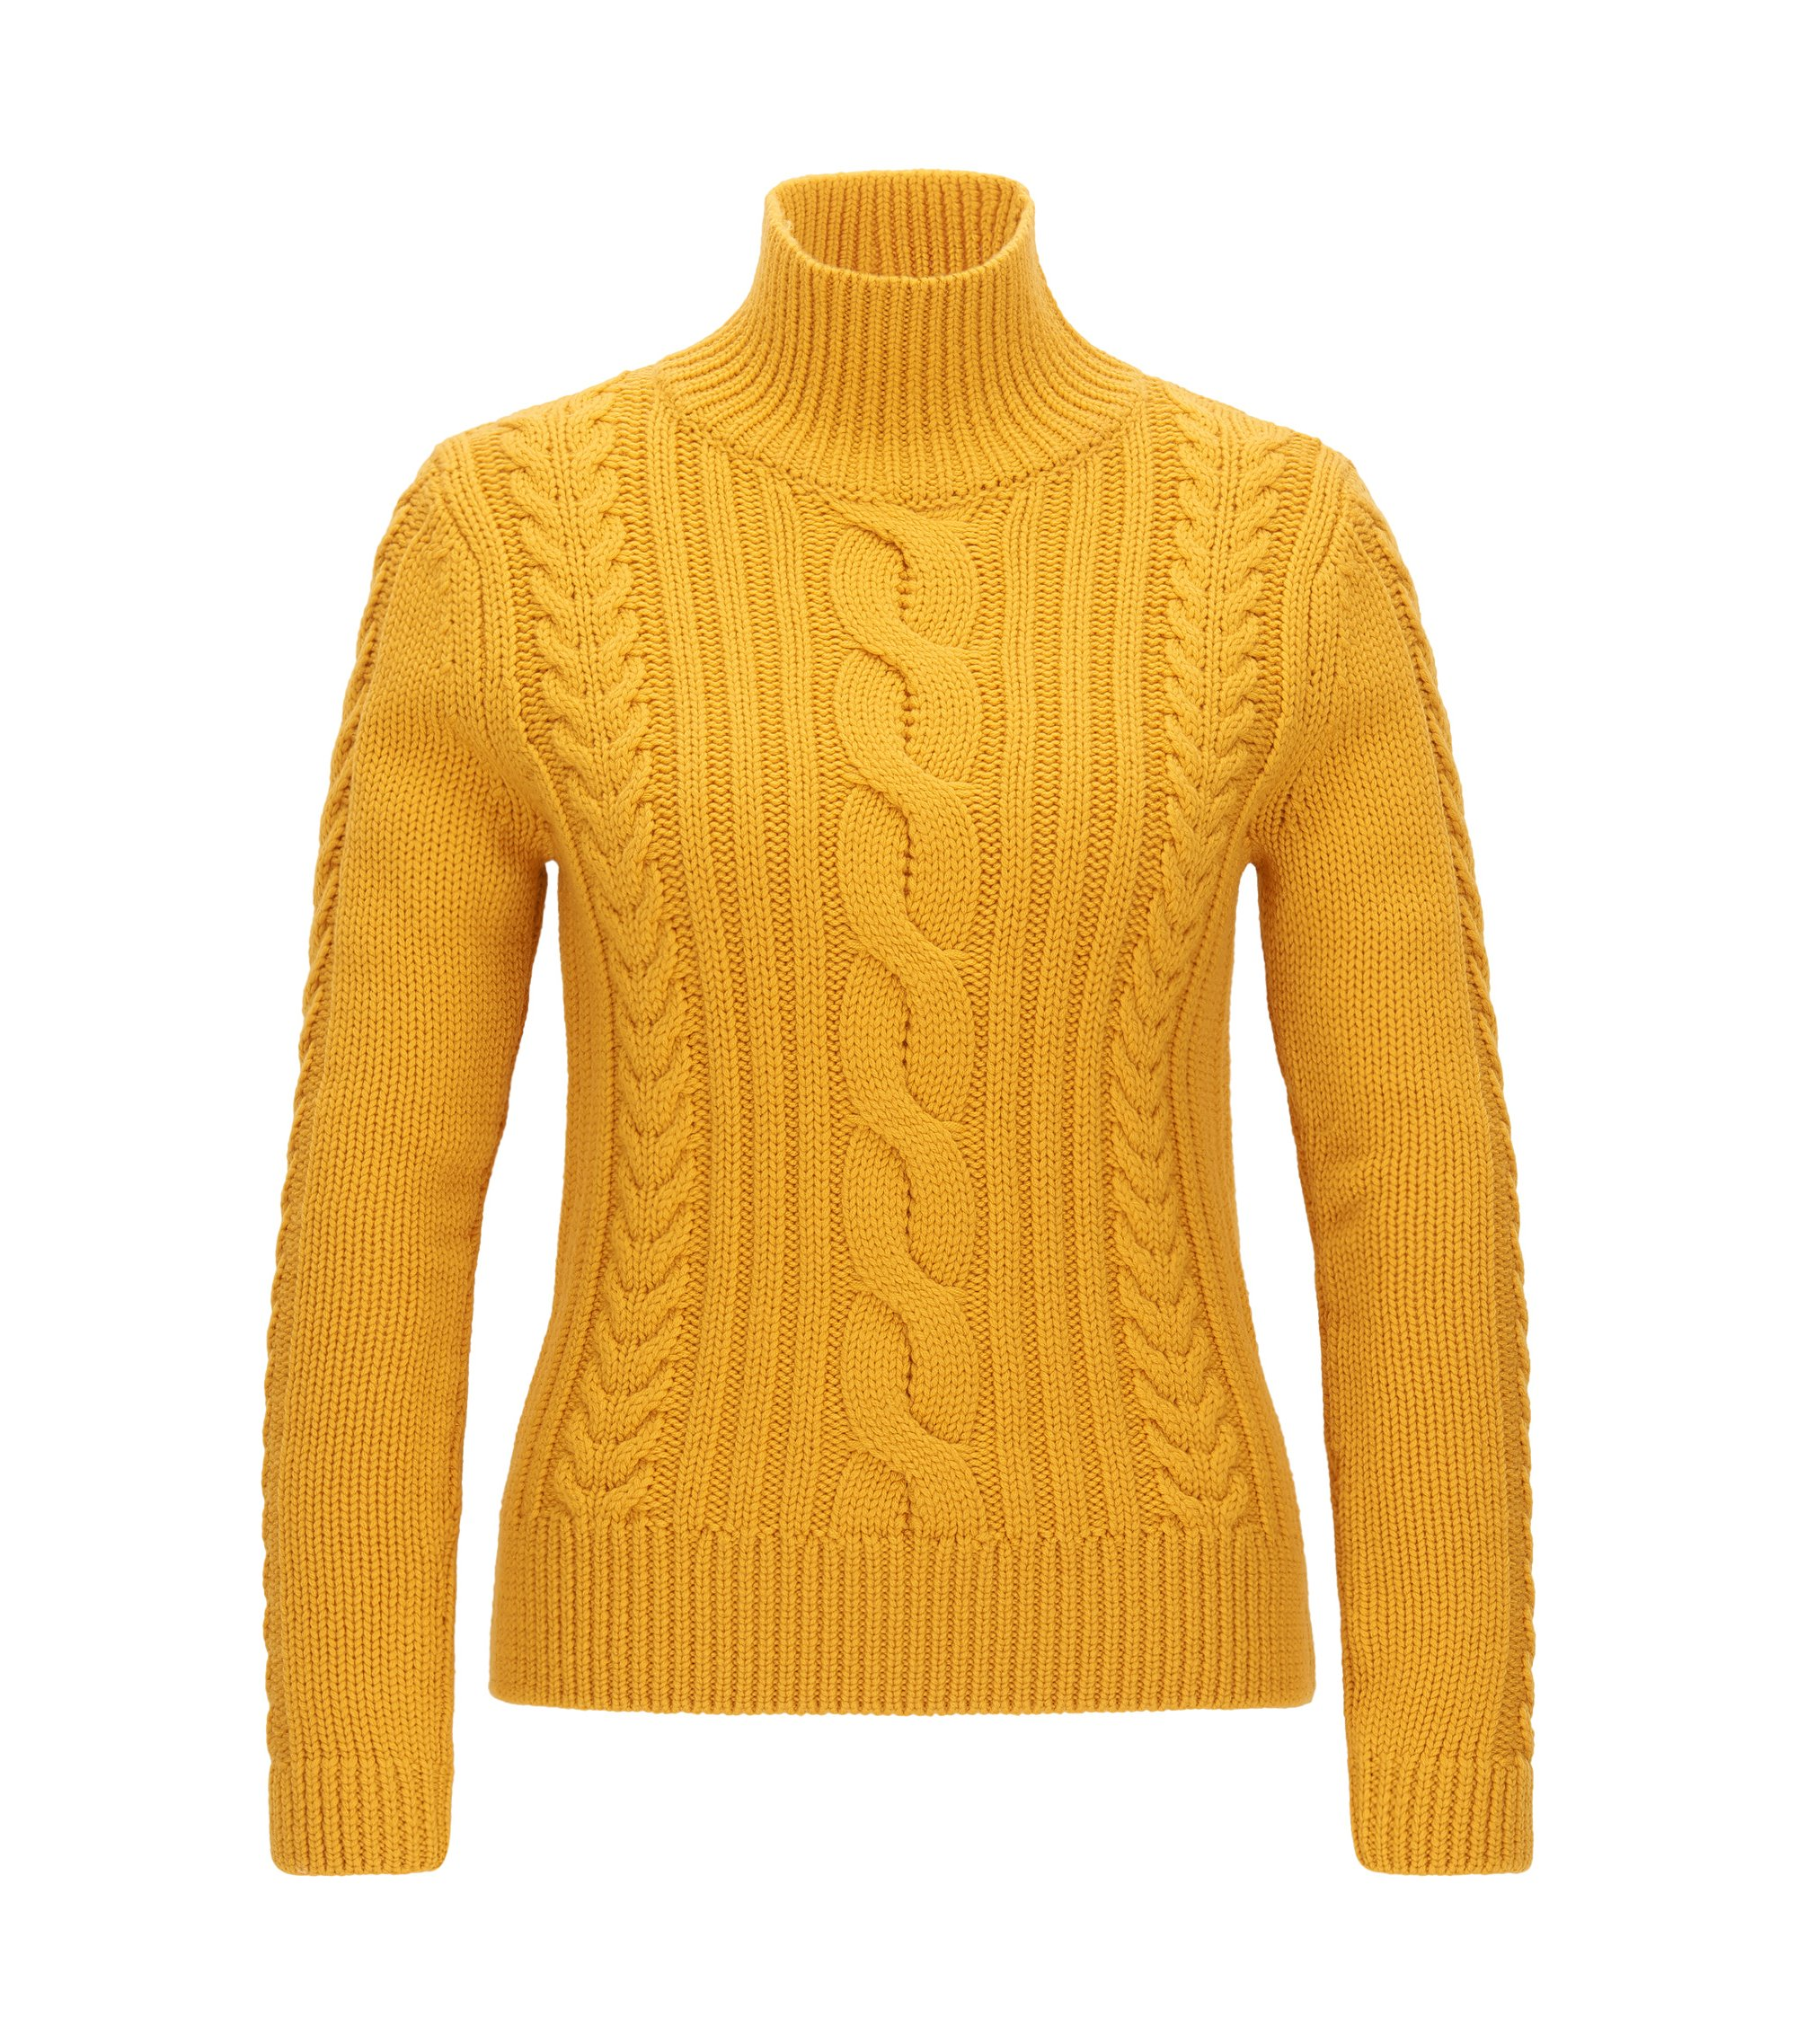 Virgin Wool Cable Knit Sweater | Samini